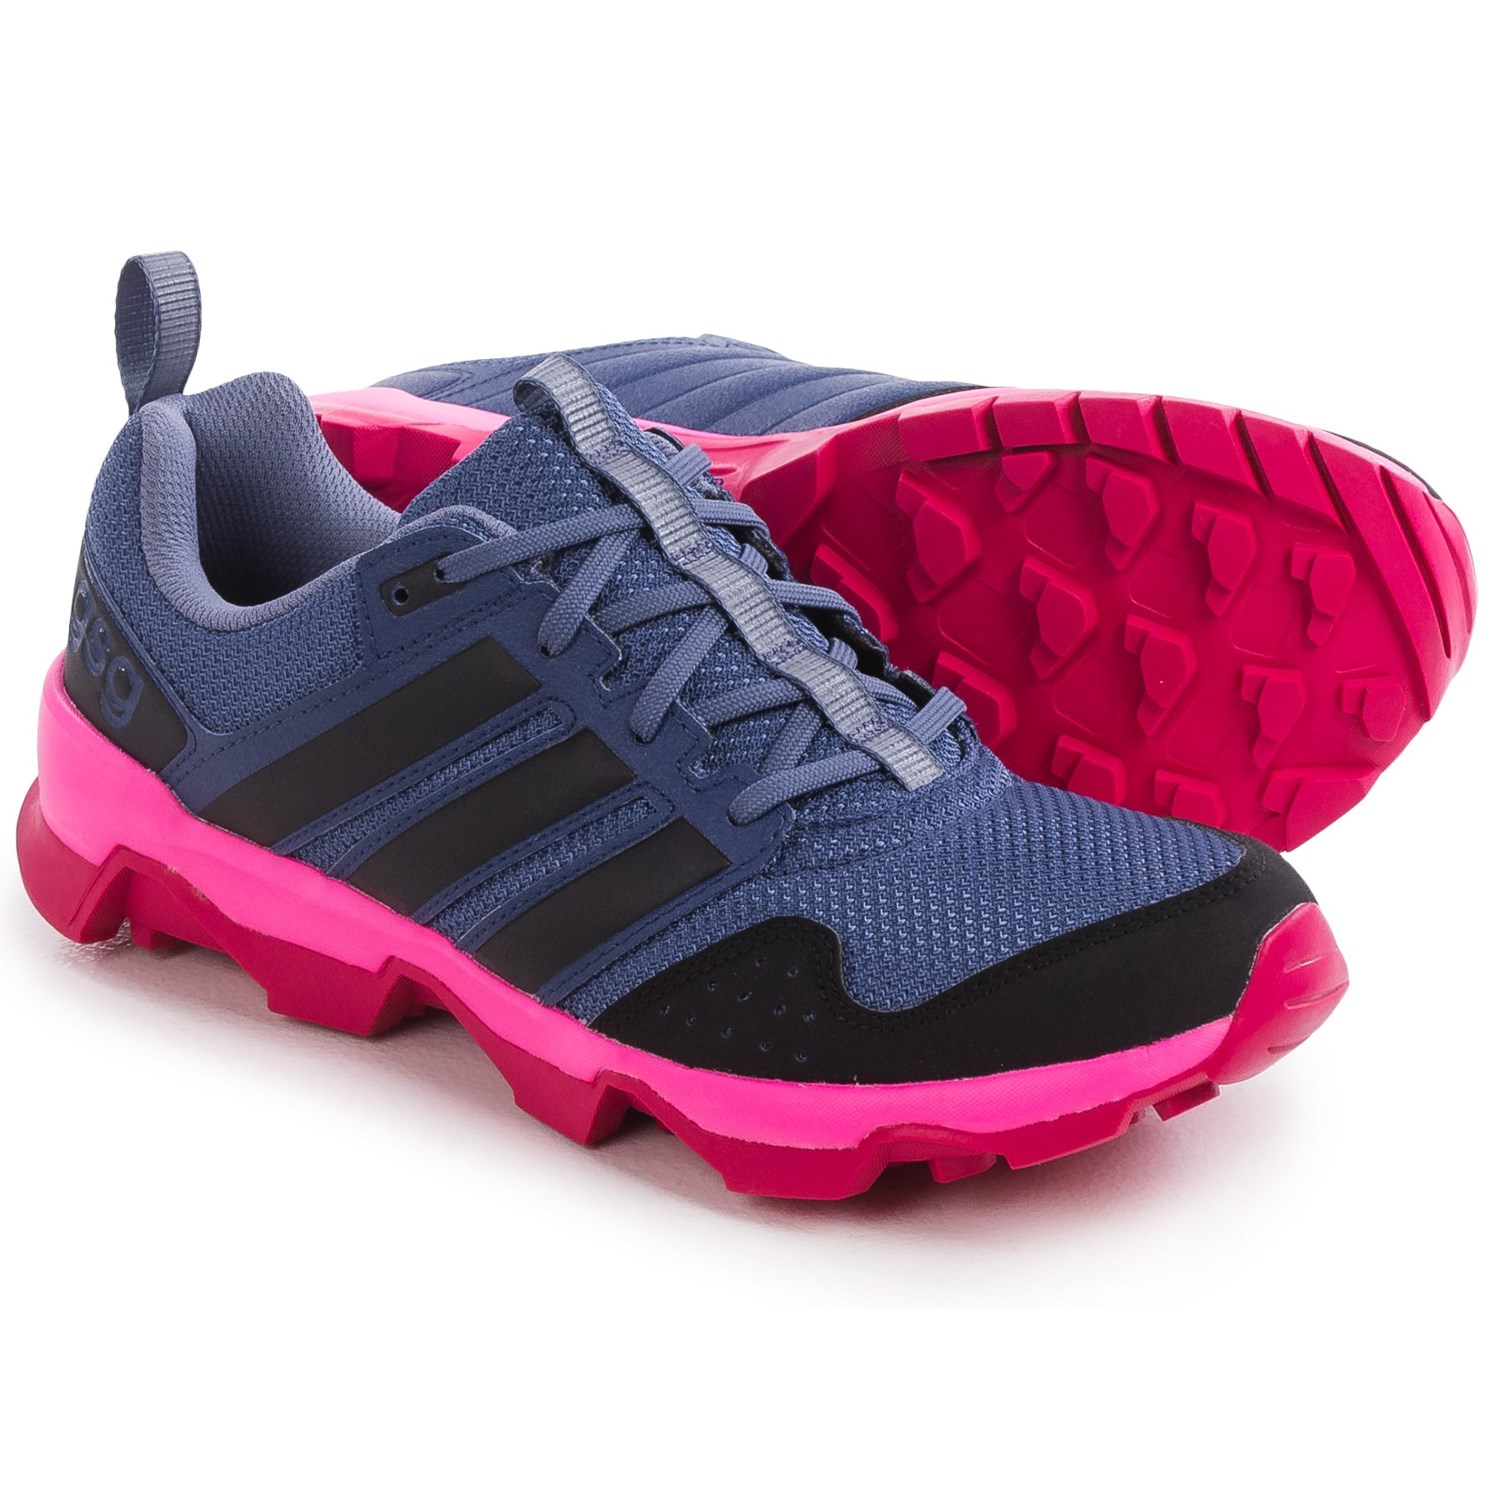 Model Adidas Adizero Adios 3 Womenu0026#39;s Running Shoes - Alton Sports